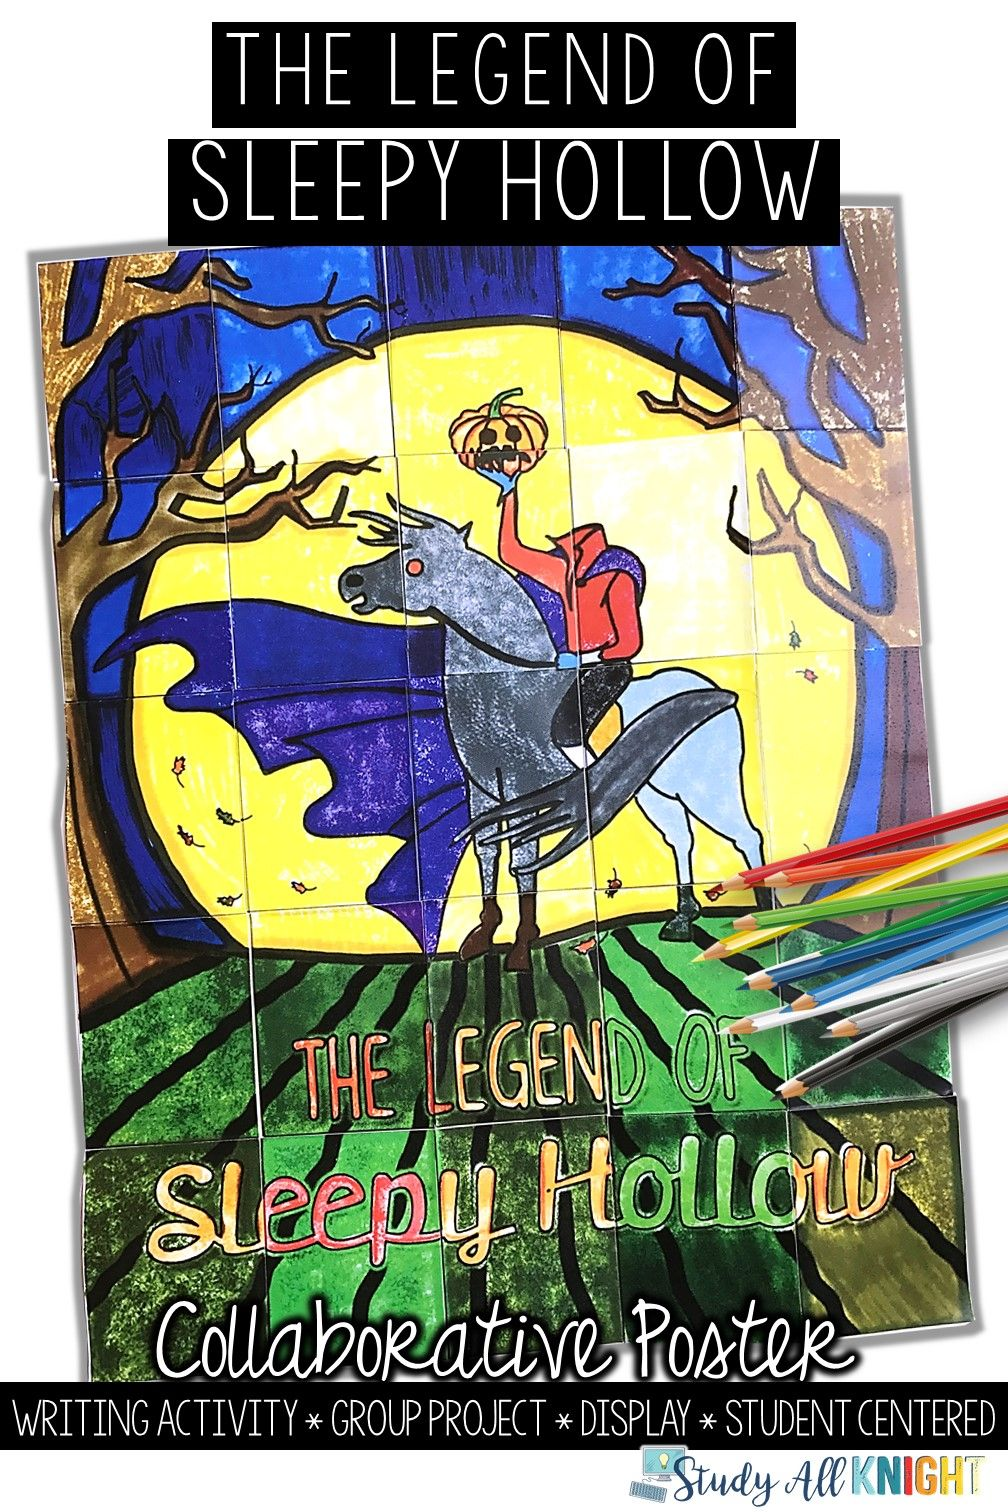 The Legend of Sleepy Hollow, Collaborative Poster